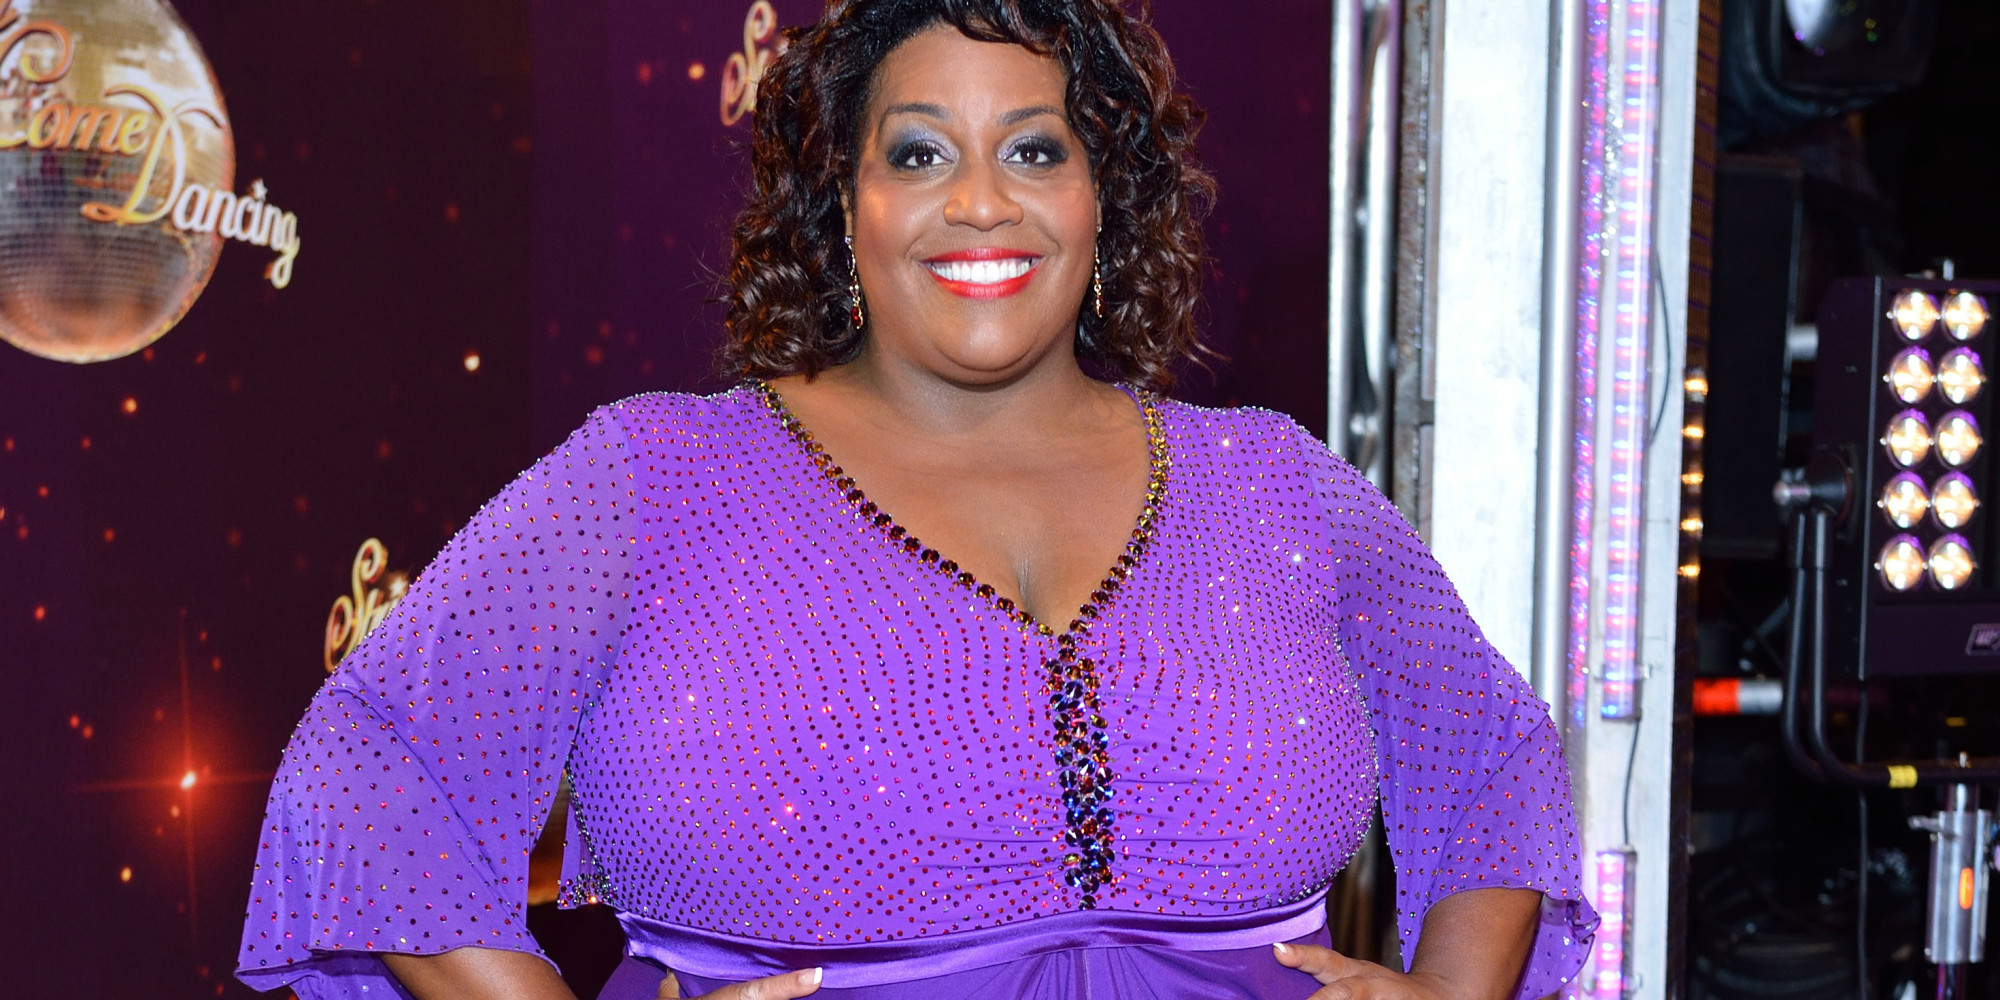 Strictly Come Dancing Alison Hammond Wants To Represent